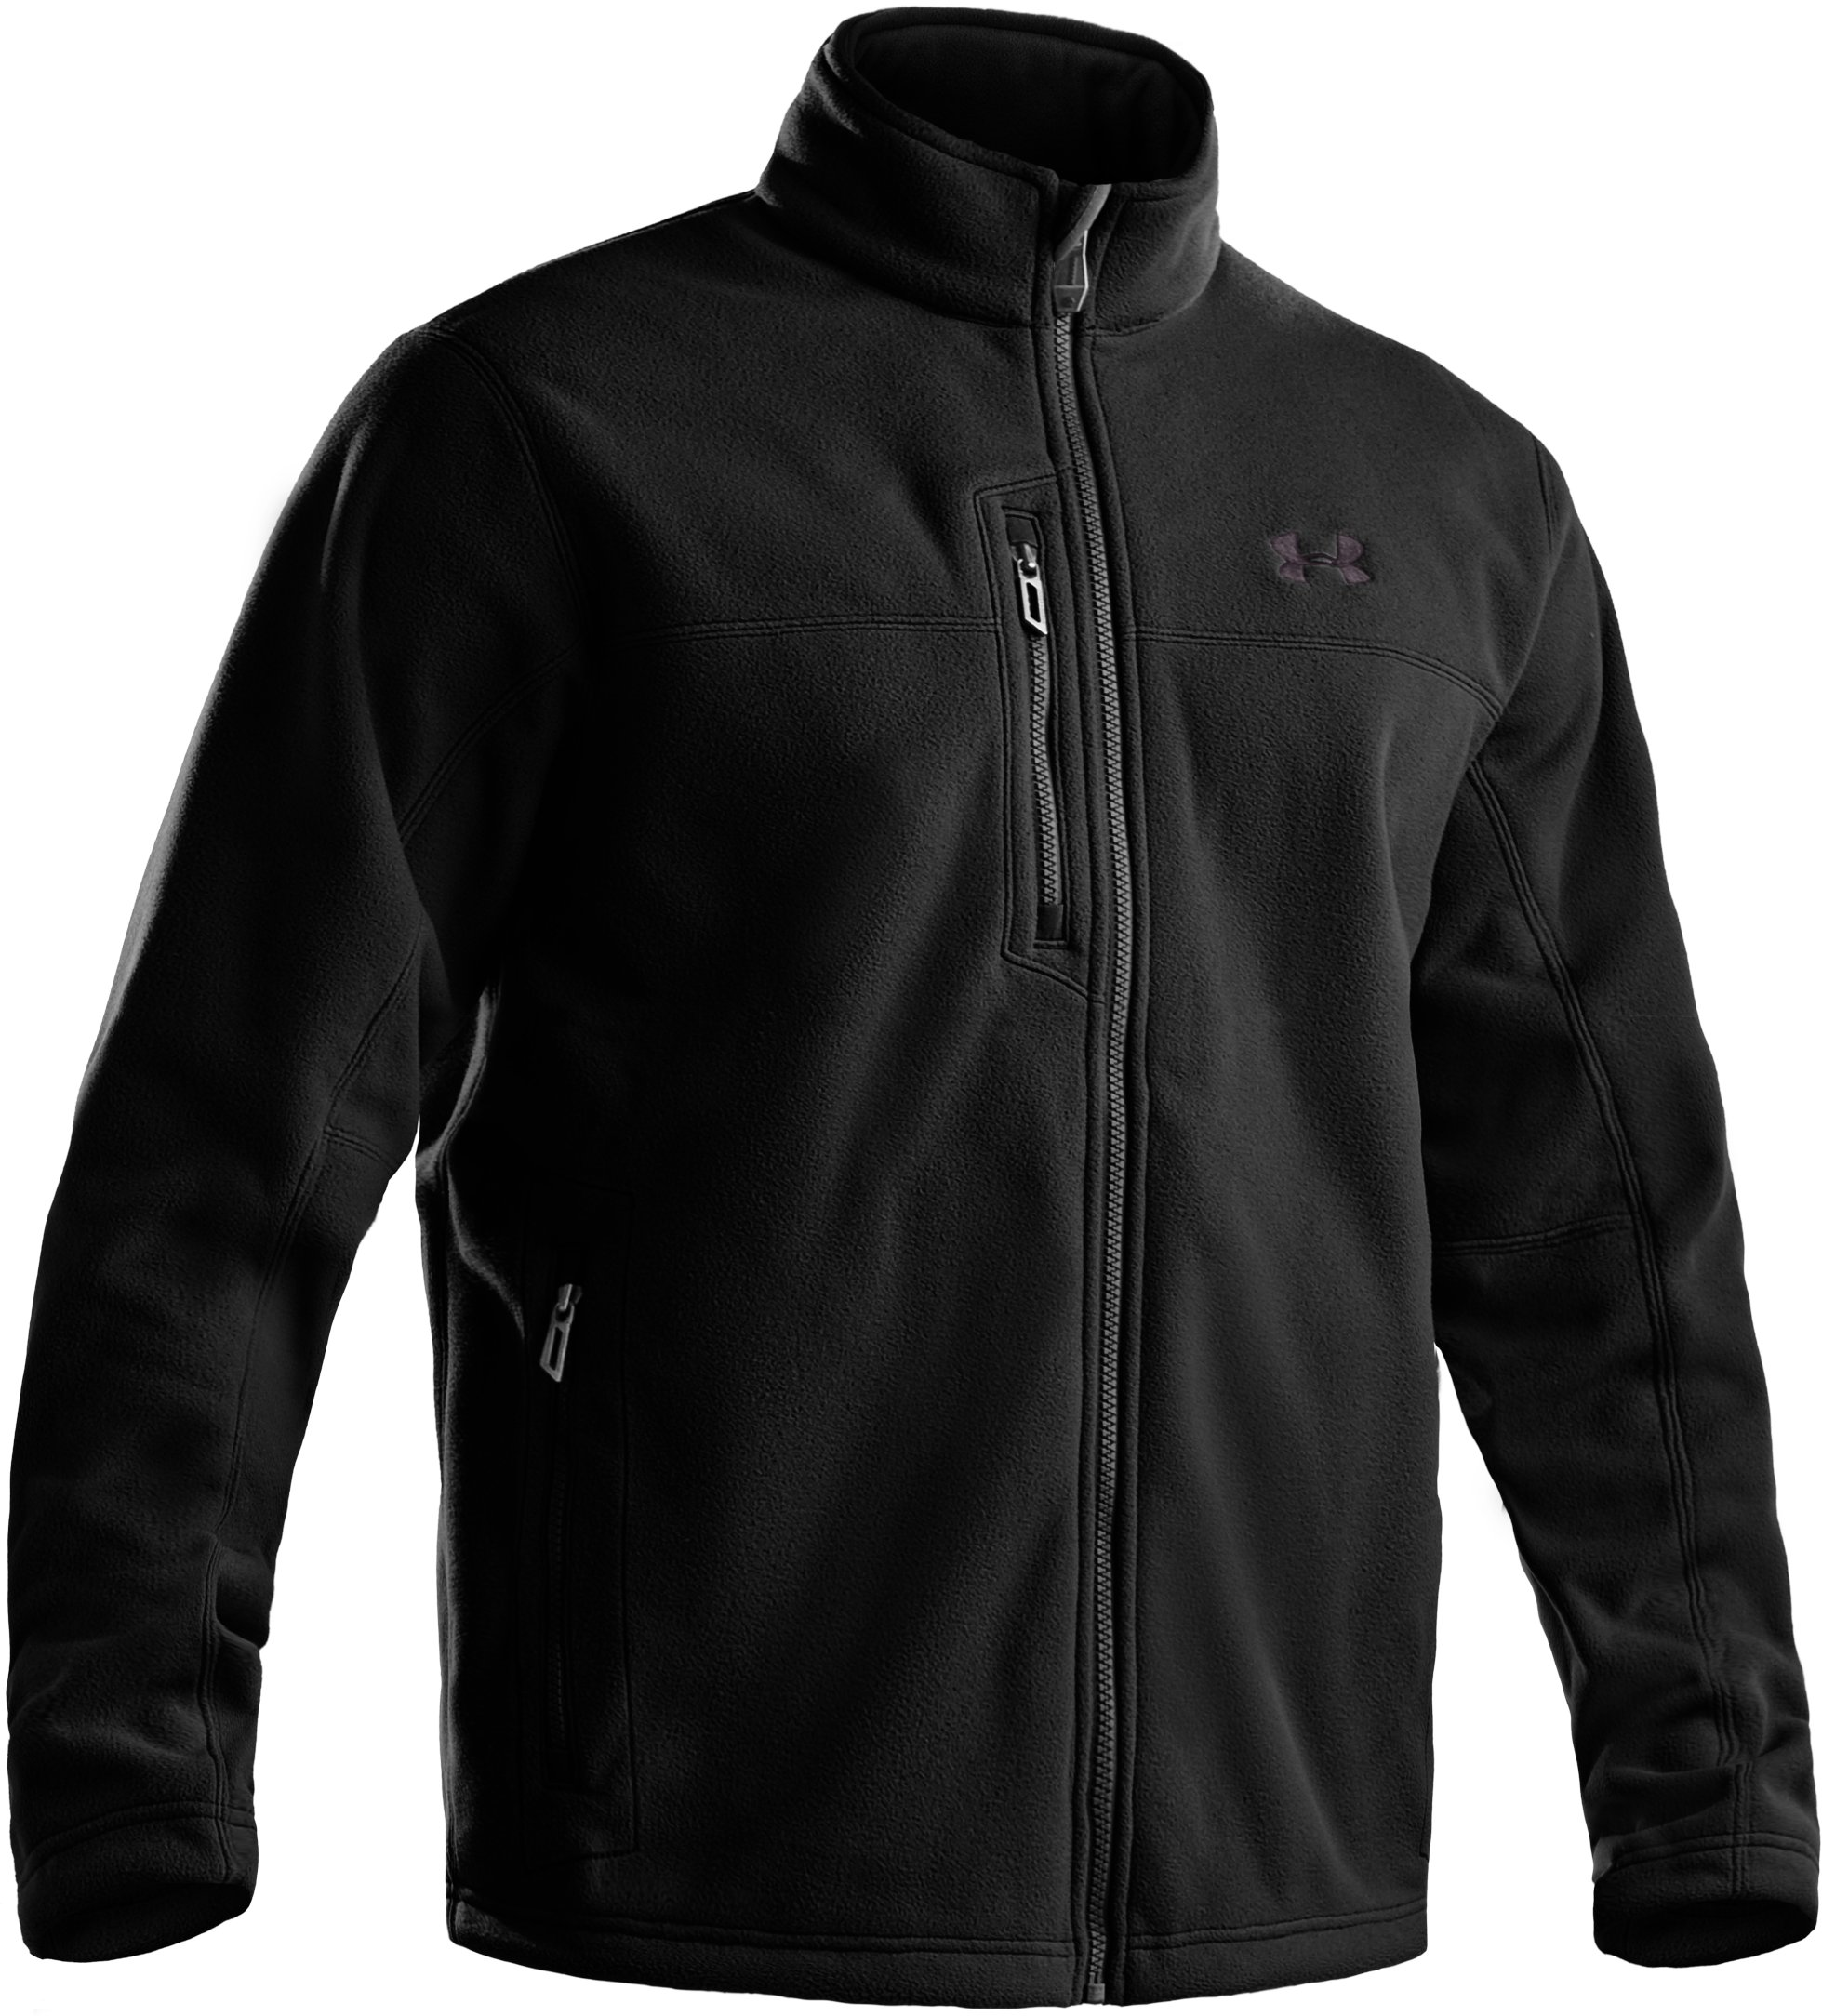 Men's Derecho II Windproof Fleece Jacket, Black